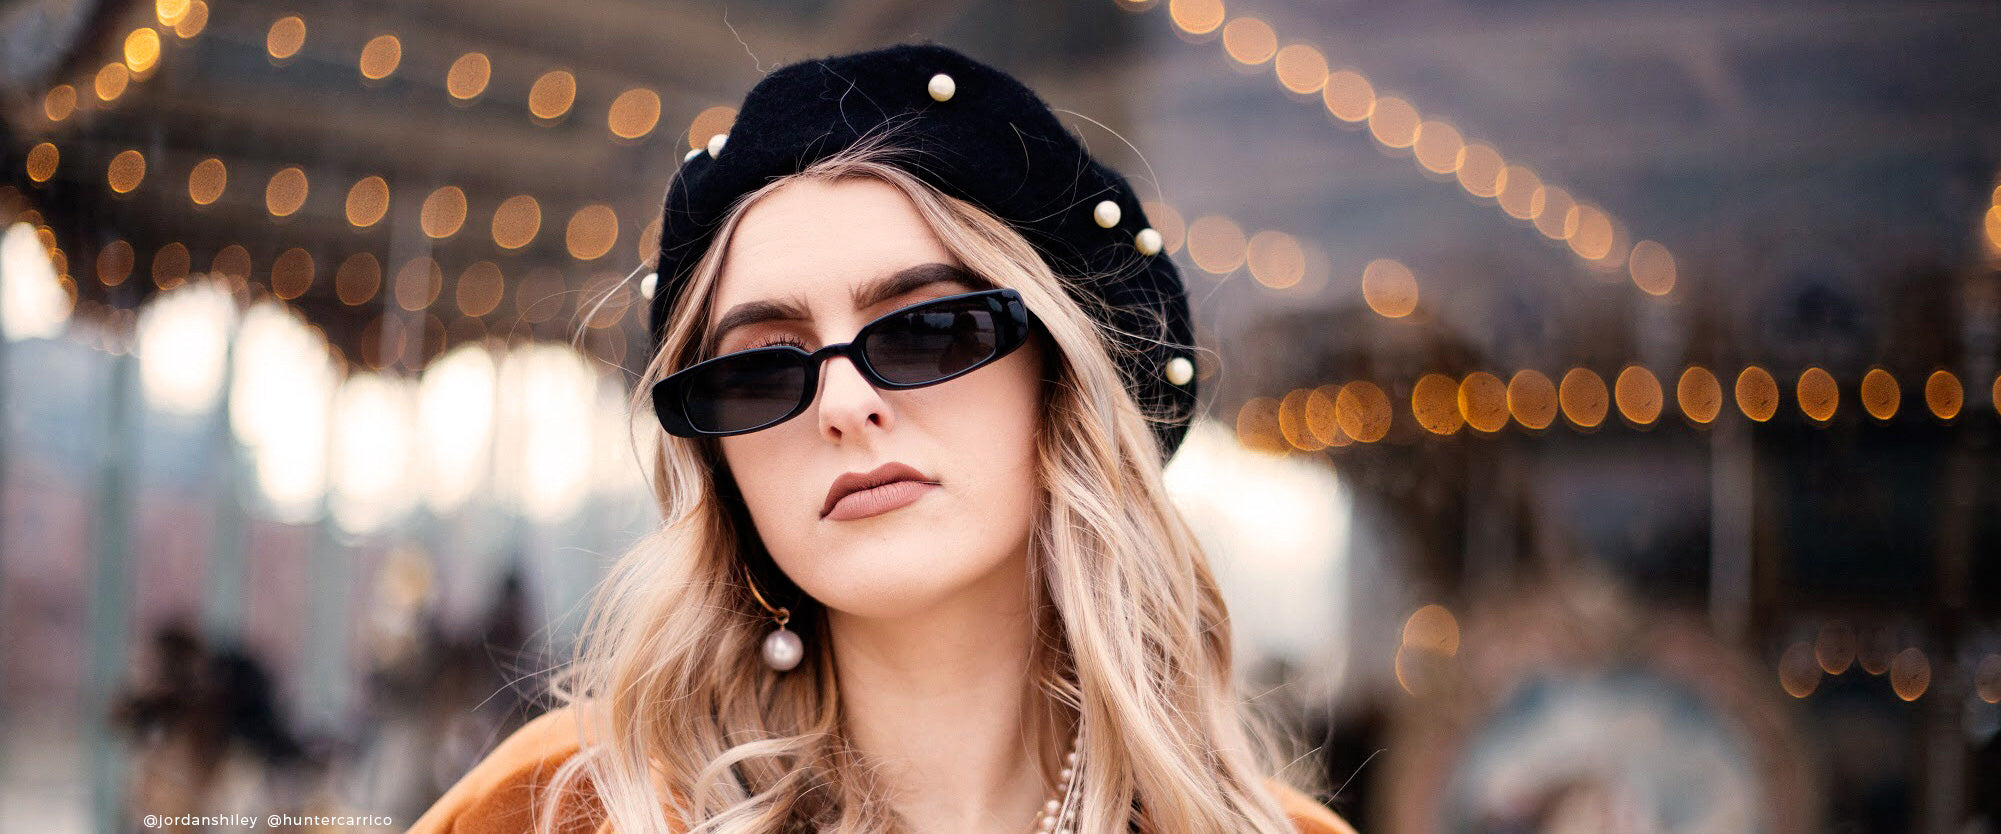 7ab3cf953596 Just when we thought the 90's was done making a comeback, the extreme small  sunglasses emerge! As seen on today's elite celebs, this retro style is  back and ...